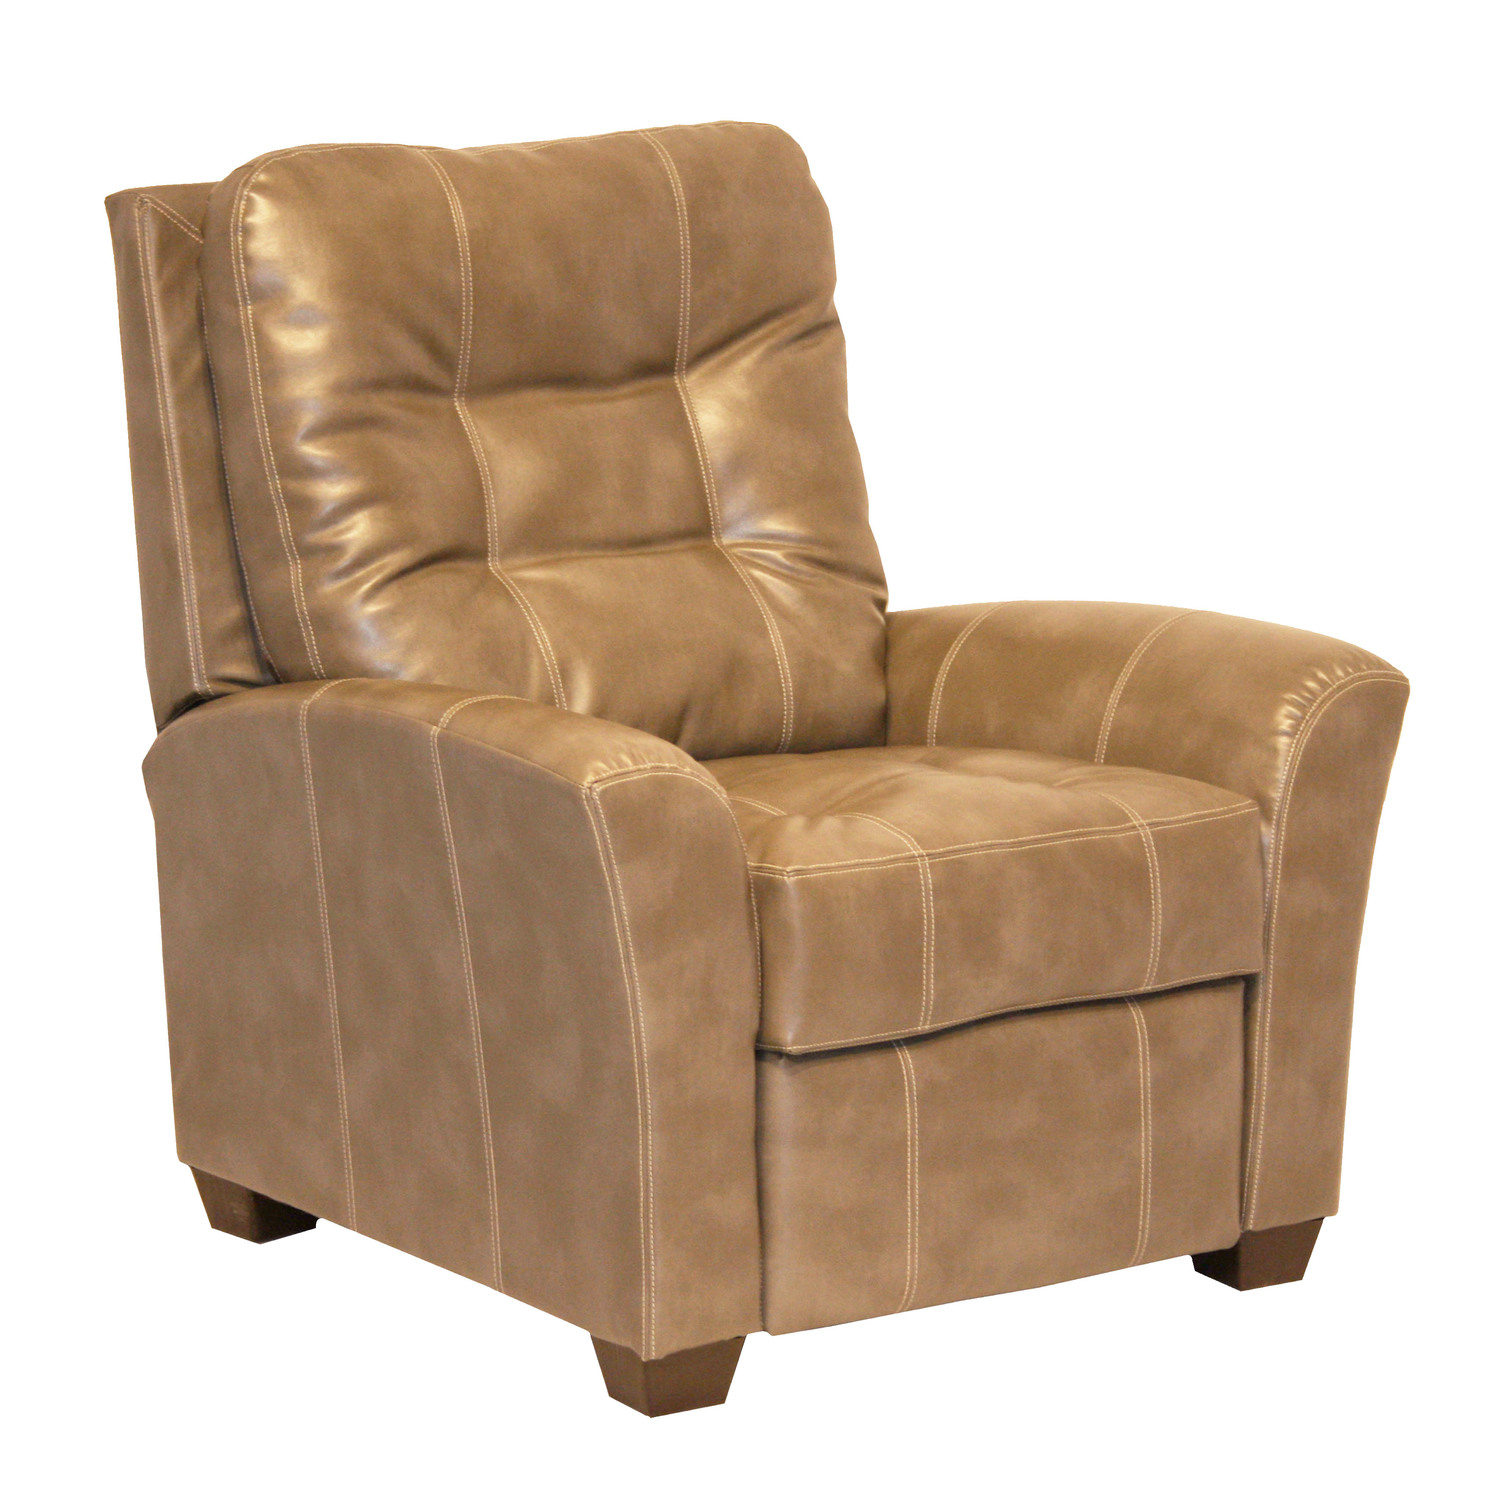 Catnapper cooper leather recliner by oj commerce for Catnapper cloud nine chaise recliner